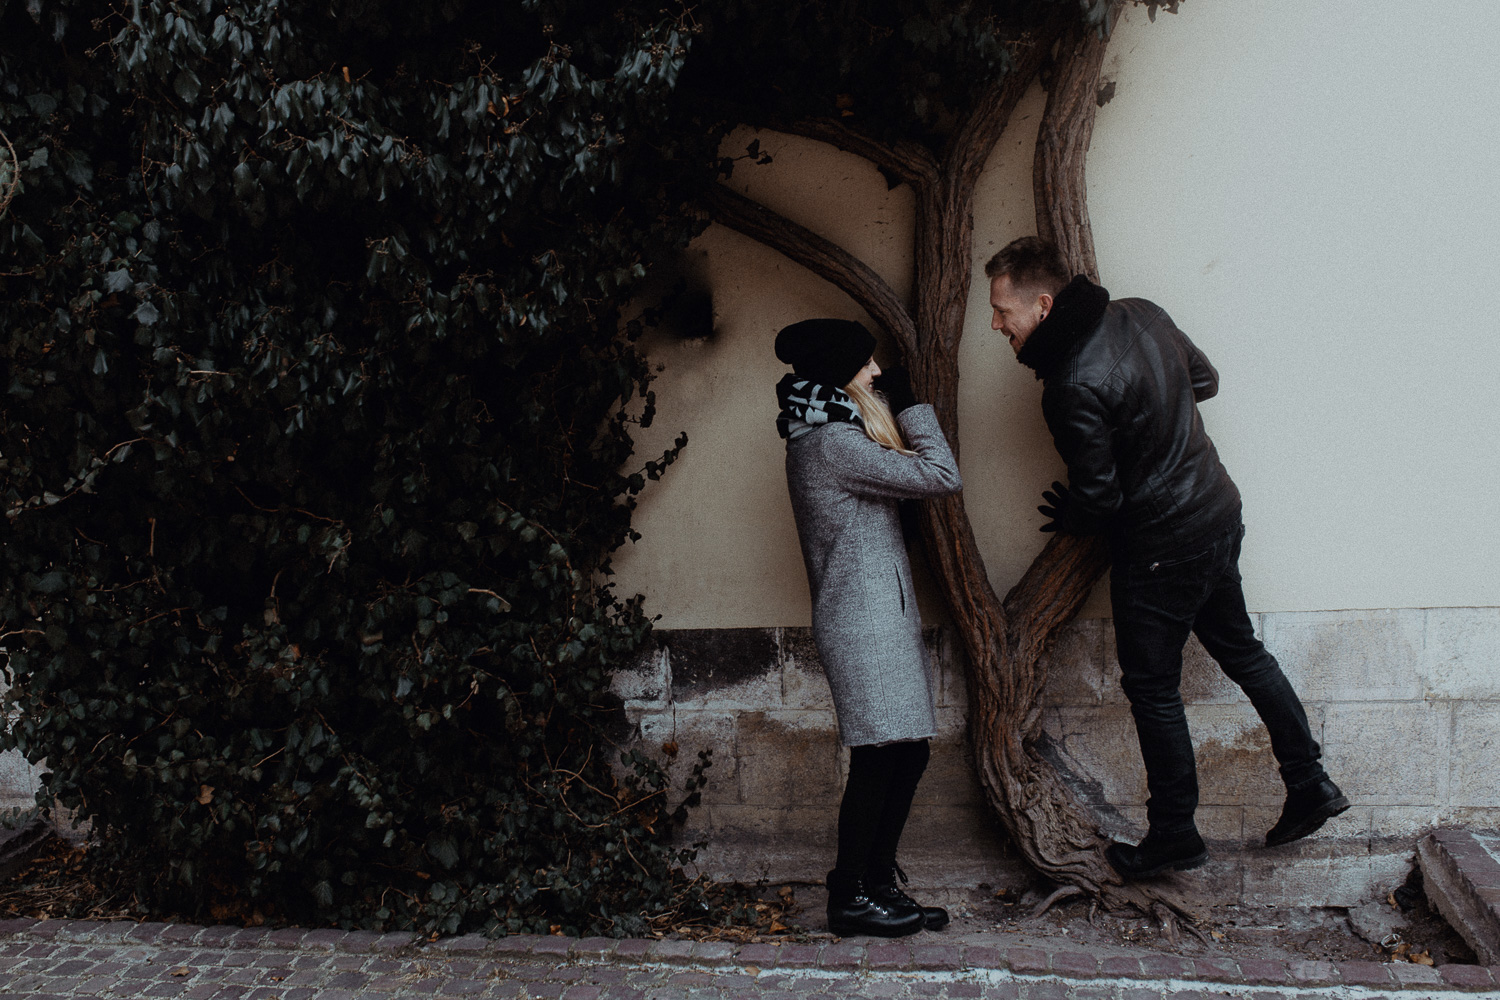 Engagement-photoshoot-in-winter-krakow-wawel-47.jpg